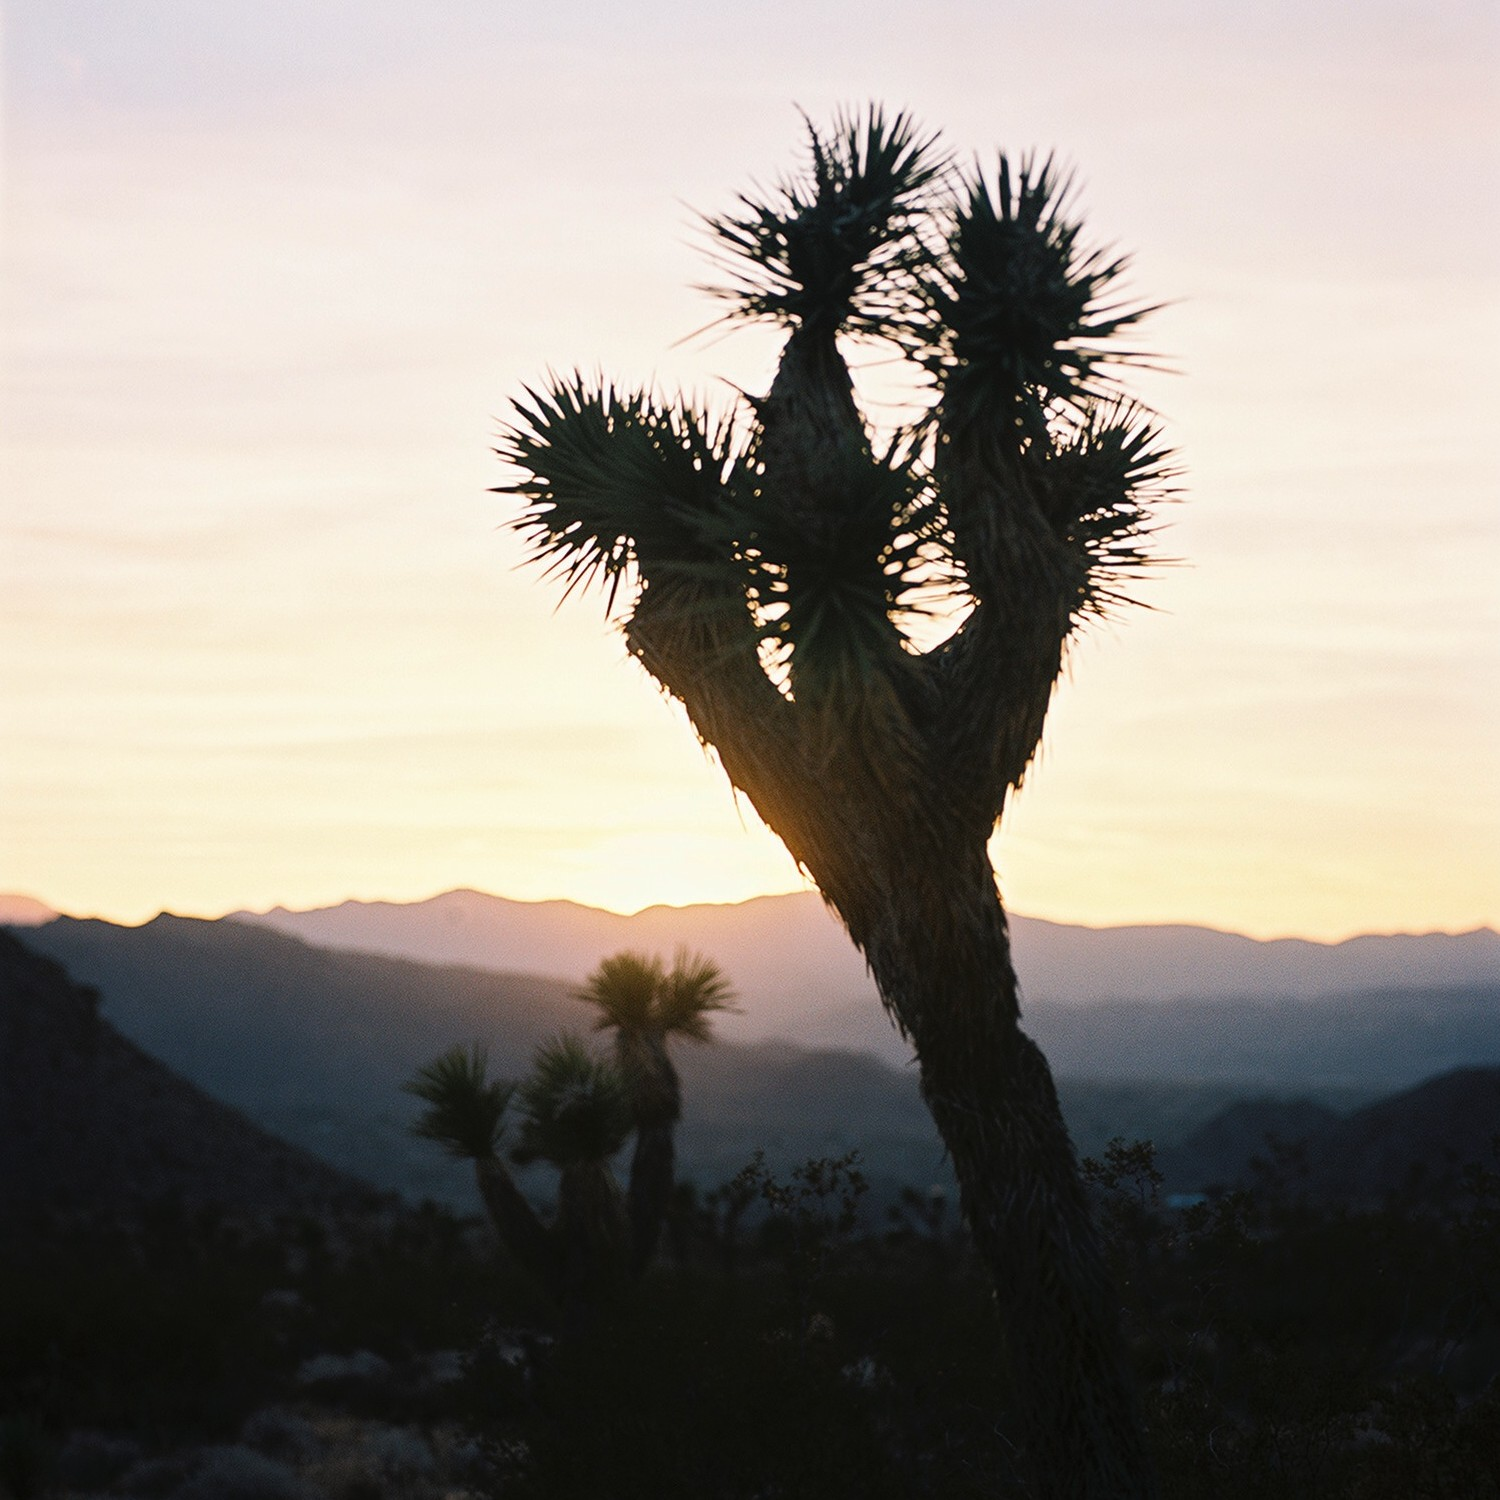 silhouette of joshua tree cactus in dessert at sunset in southern California